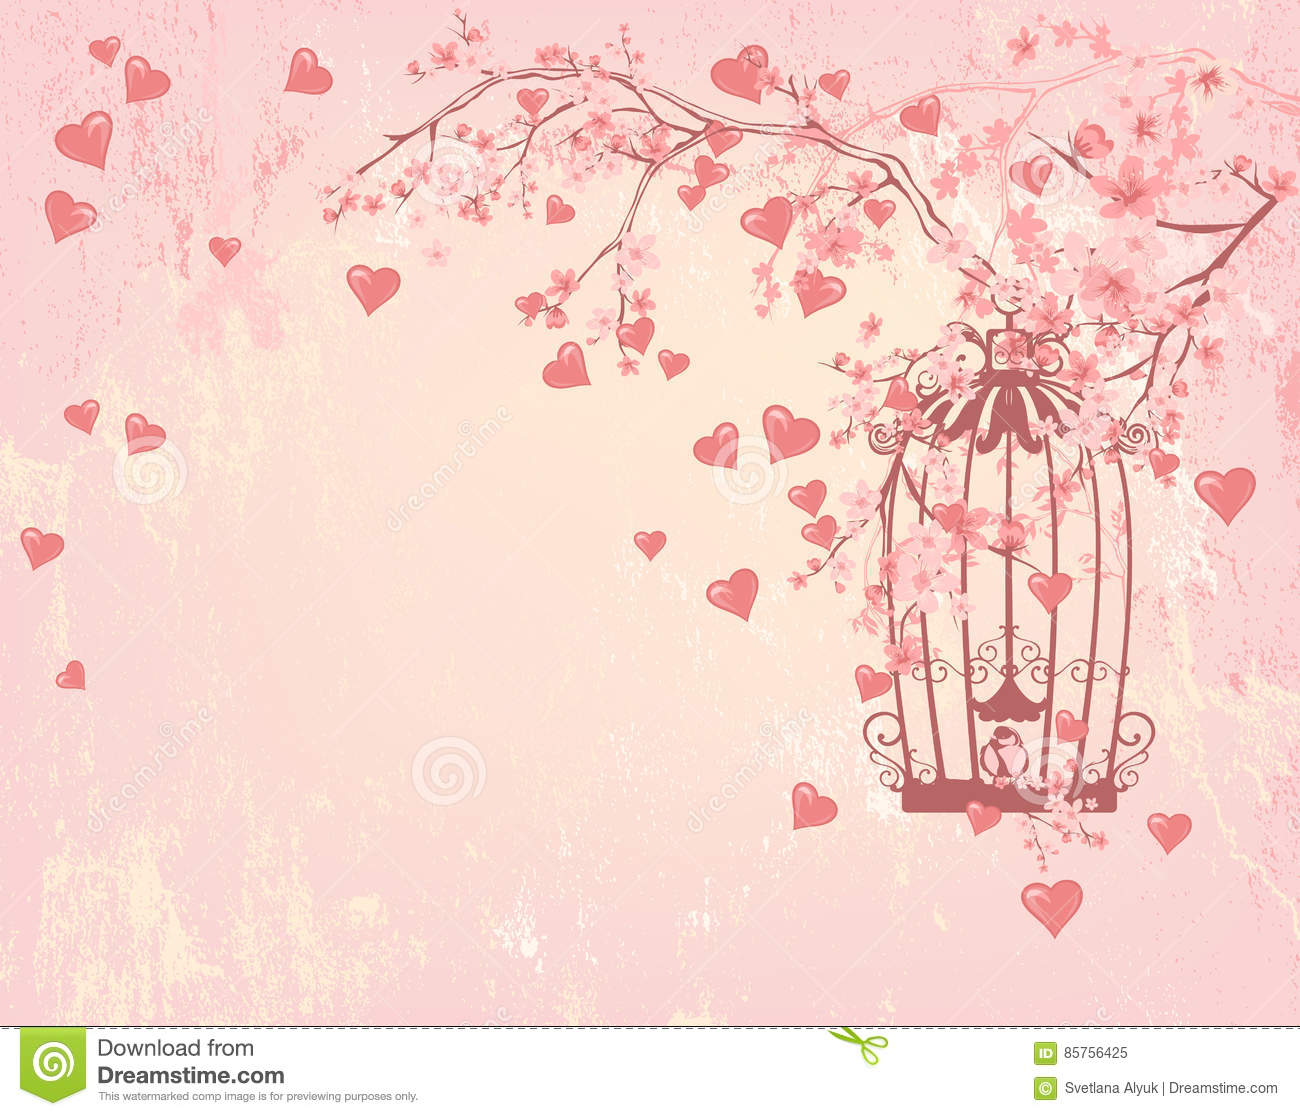 Bird Cage Among Hearts Pink Flowers And Tree Branches Stock Vector